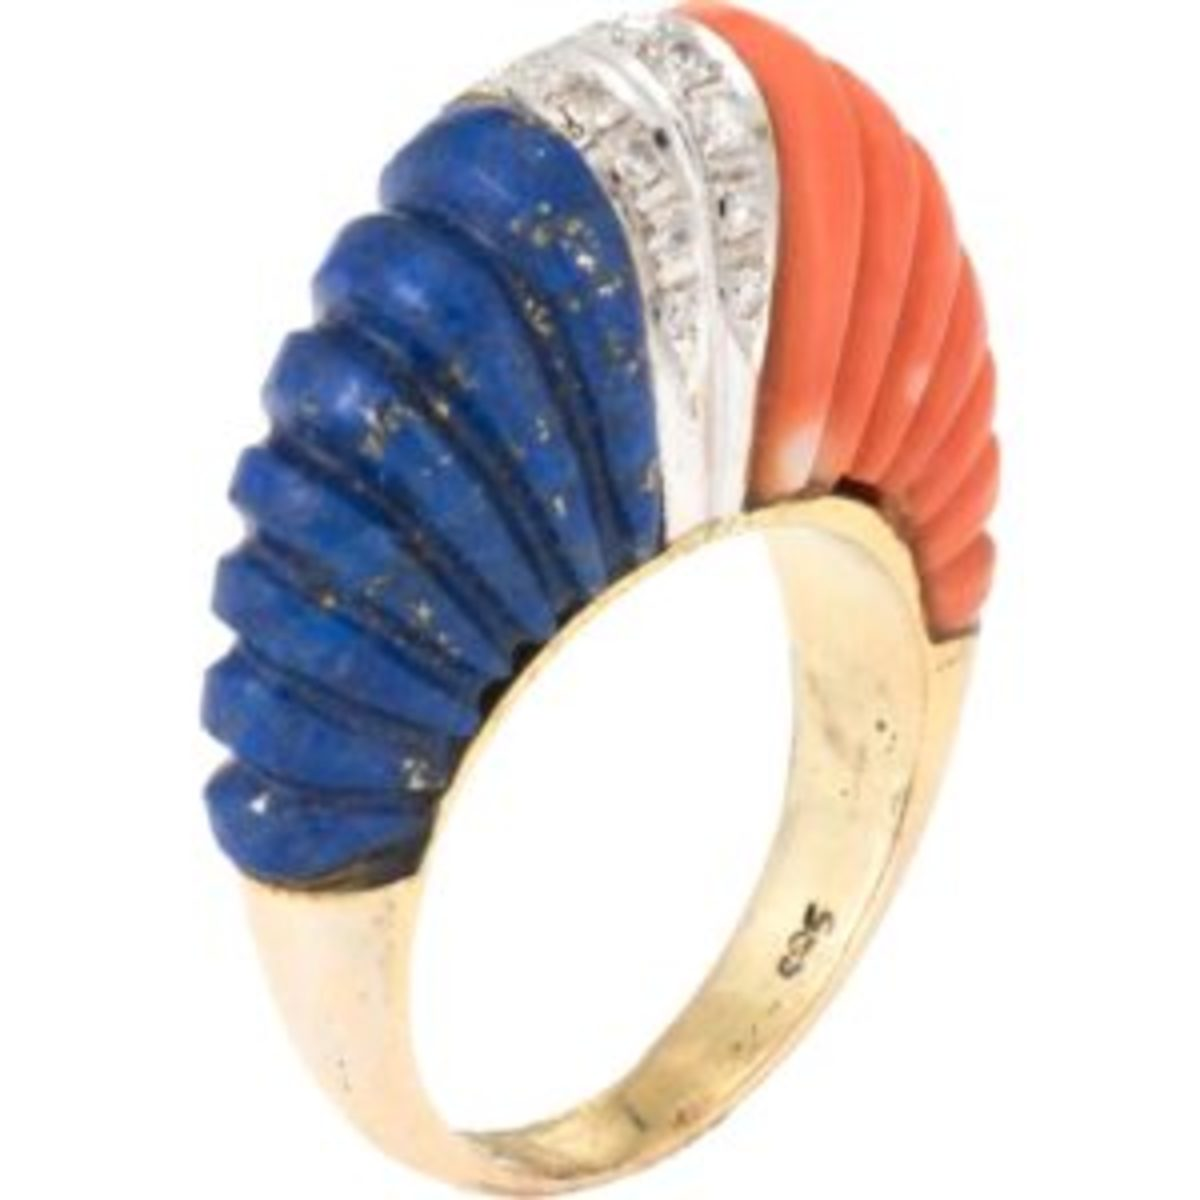 Finely detailed vintage dome cocktail ring (circa 1960s), crafted in 14 karat yellow gold. Fluted lapis lazuli measures 20mm x 7.5mm and fluted coral measures 20mm x 7.5mm. $2,895. Courtesy of Ruby Lane